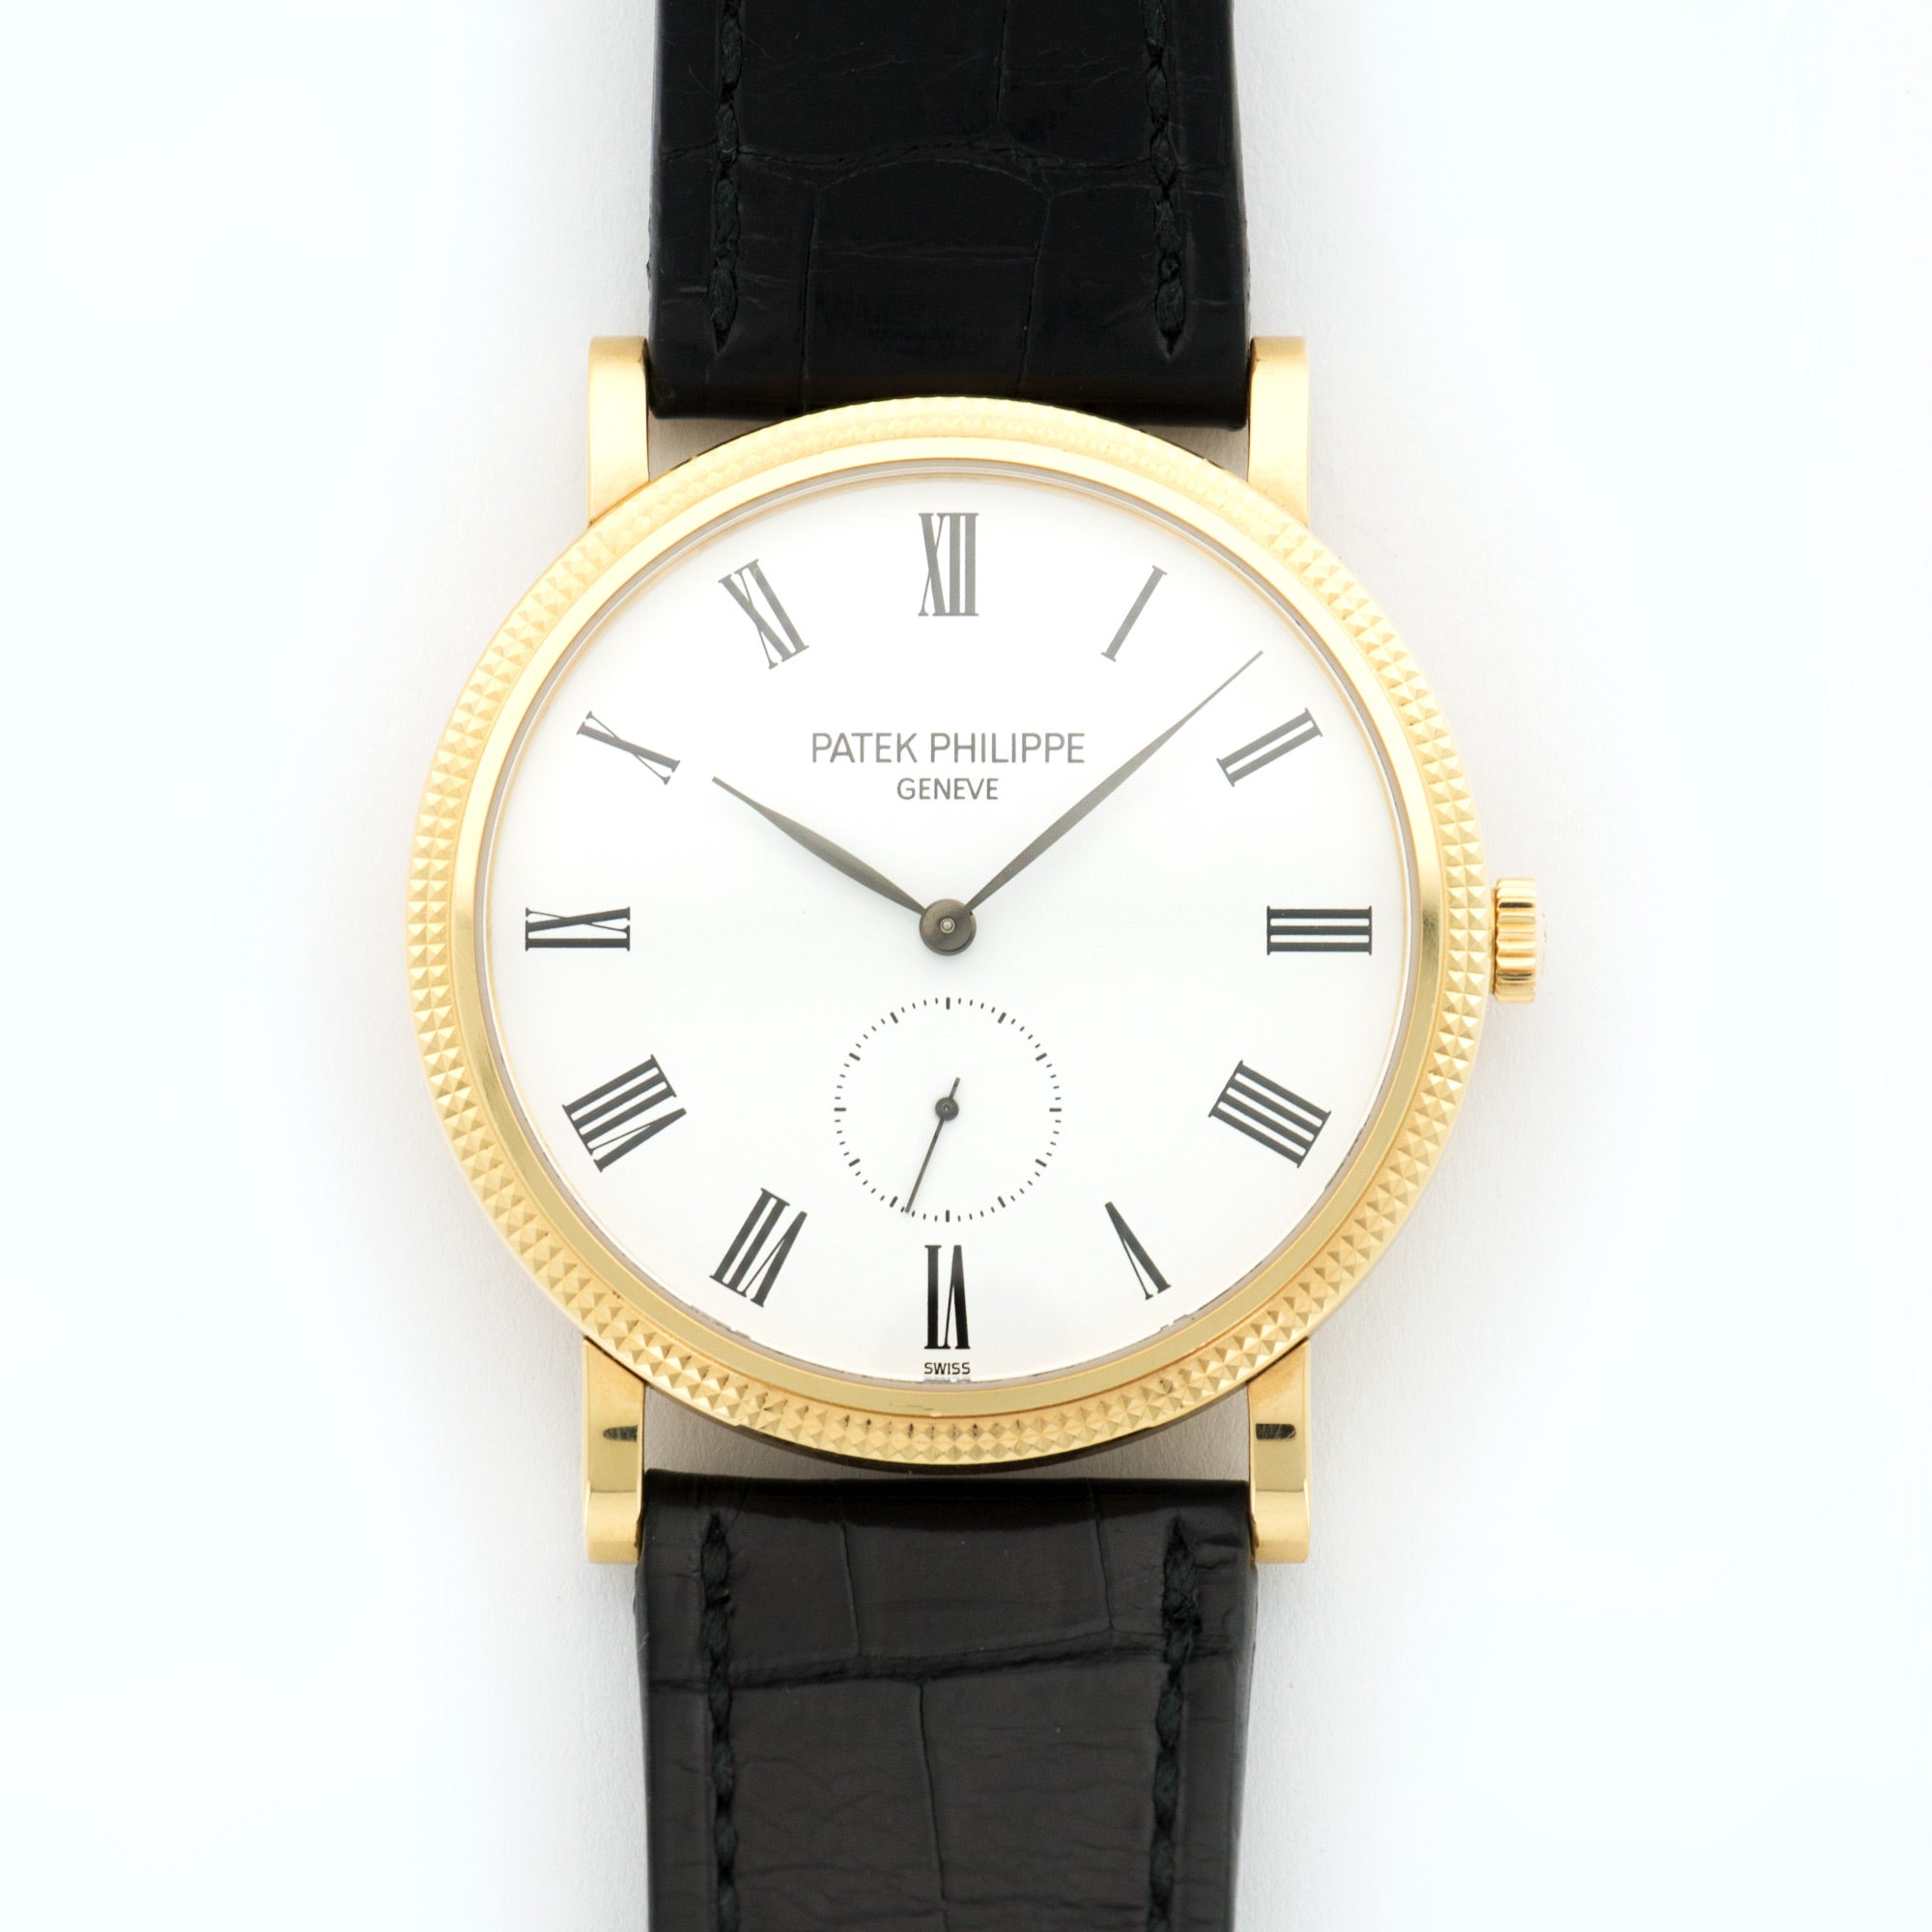 Patek Philippe Calatrava 5119J 18k YG  Excellent Gents 18k YG White with Black Roman Numerals 36mm Manual Current Black Crocodile (Used Condition) N/A